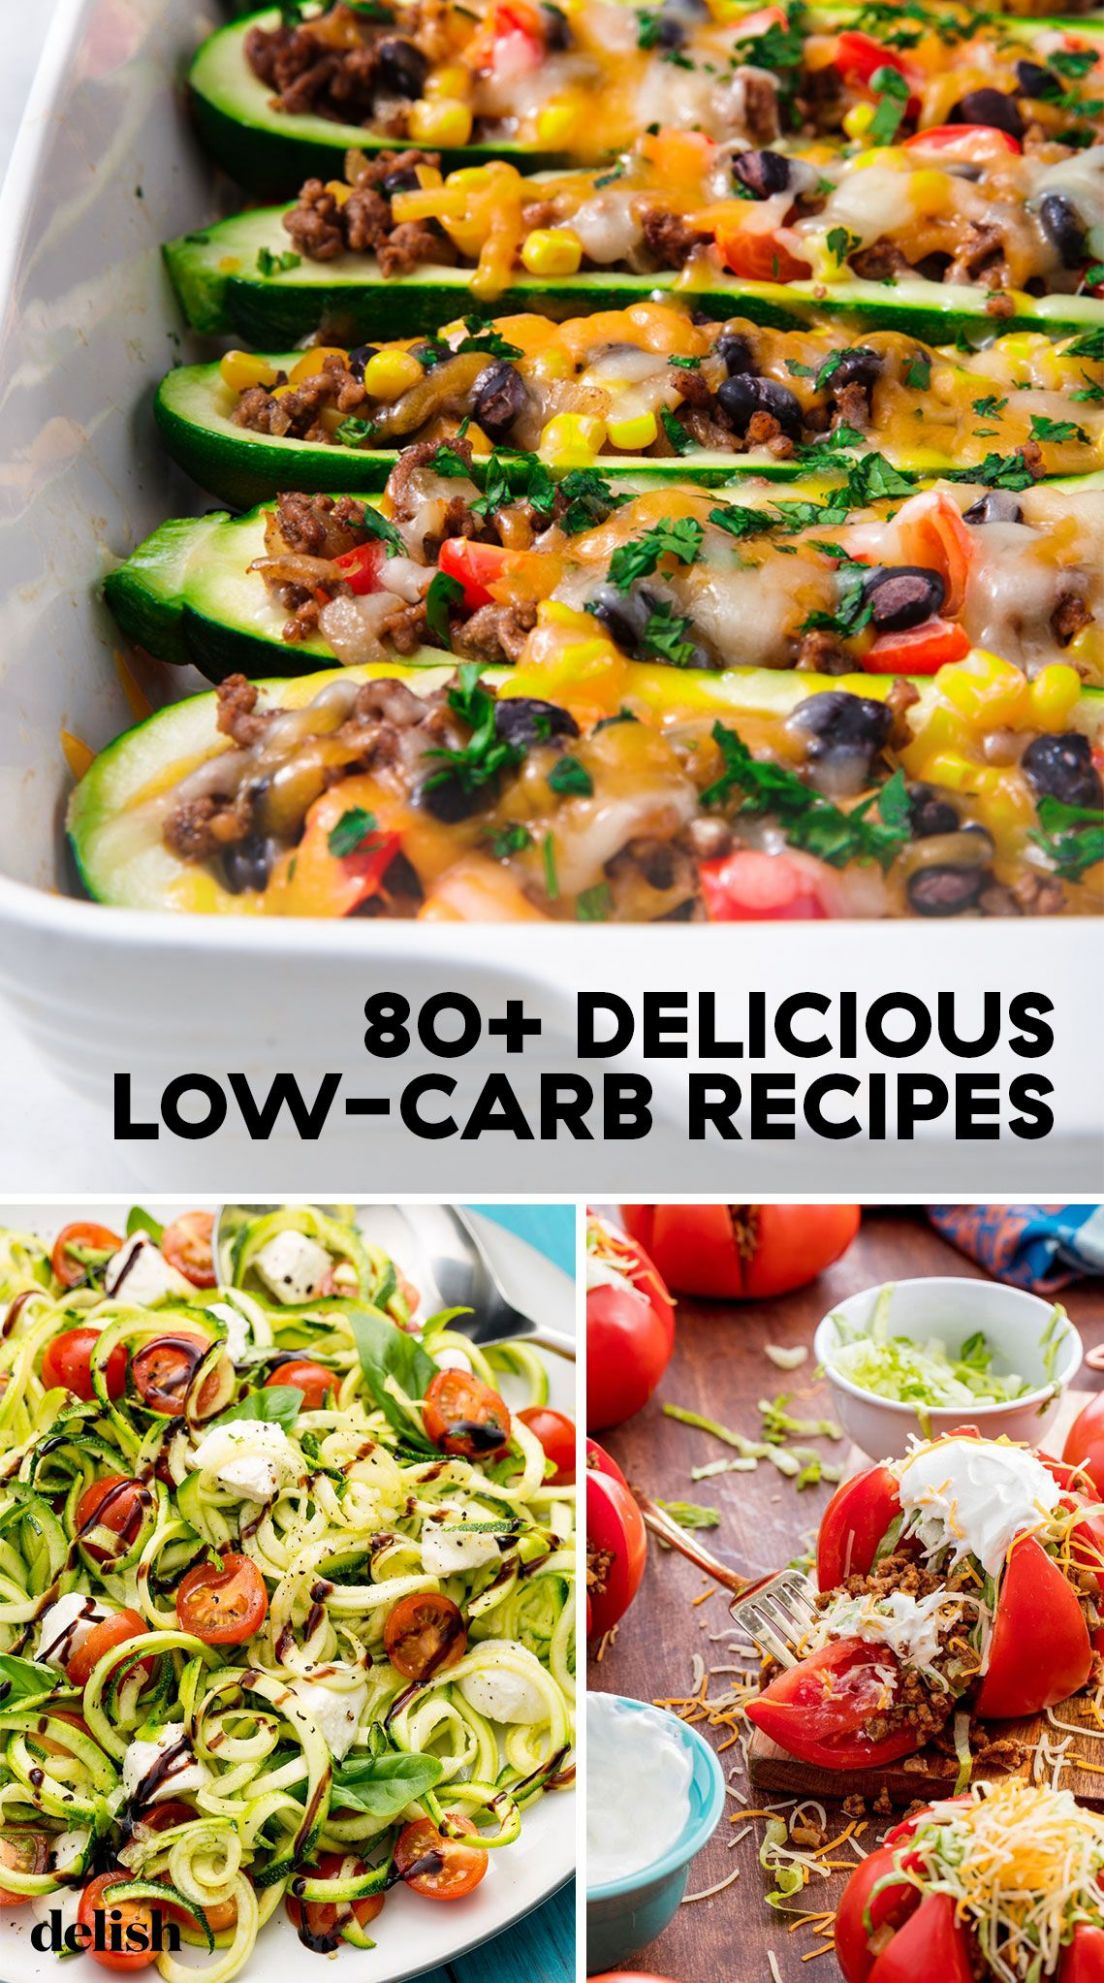 9+ Easy Low Carb Recipes - Best Low Carb Meal Ideas